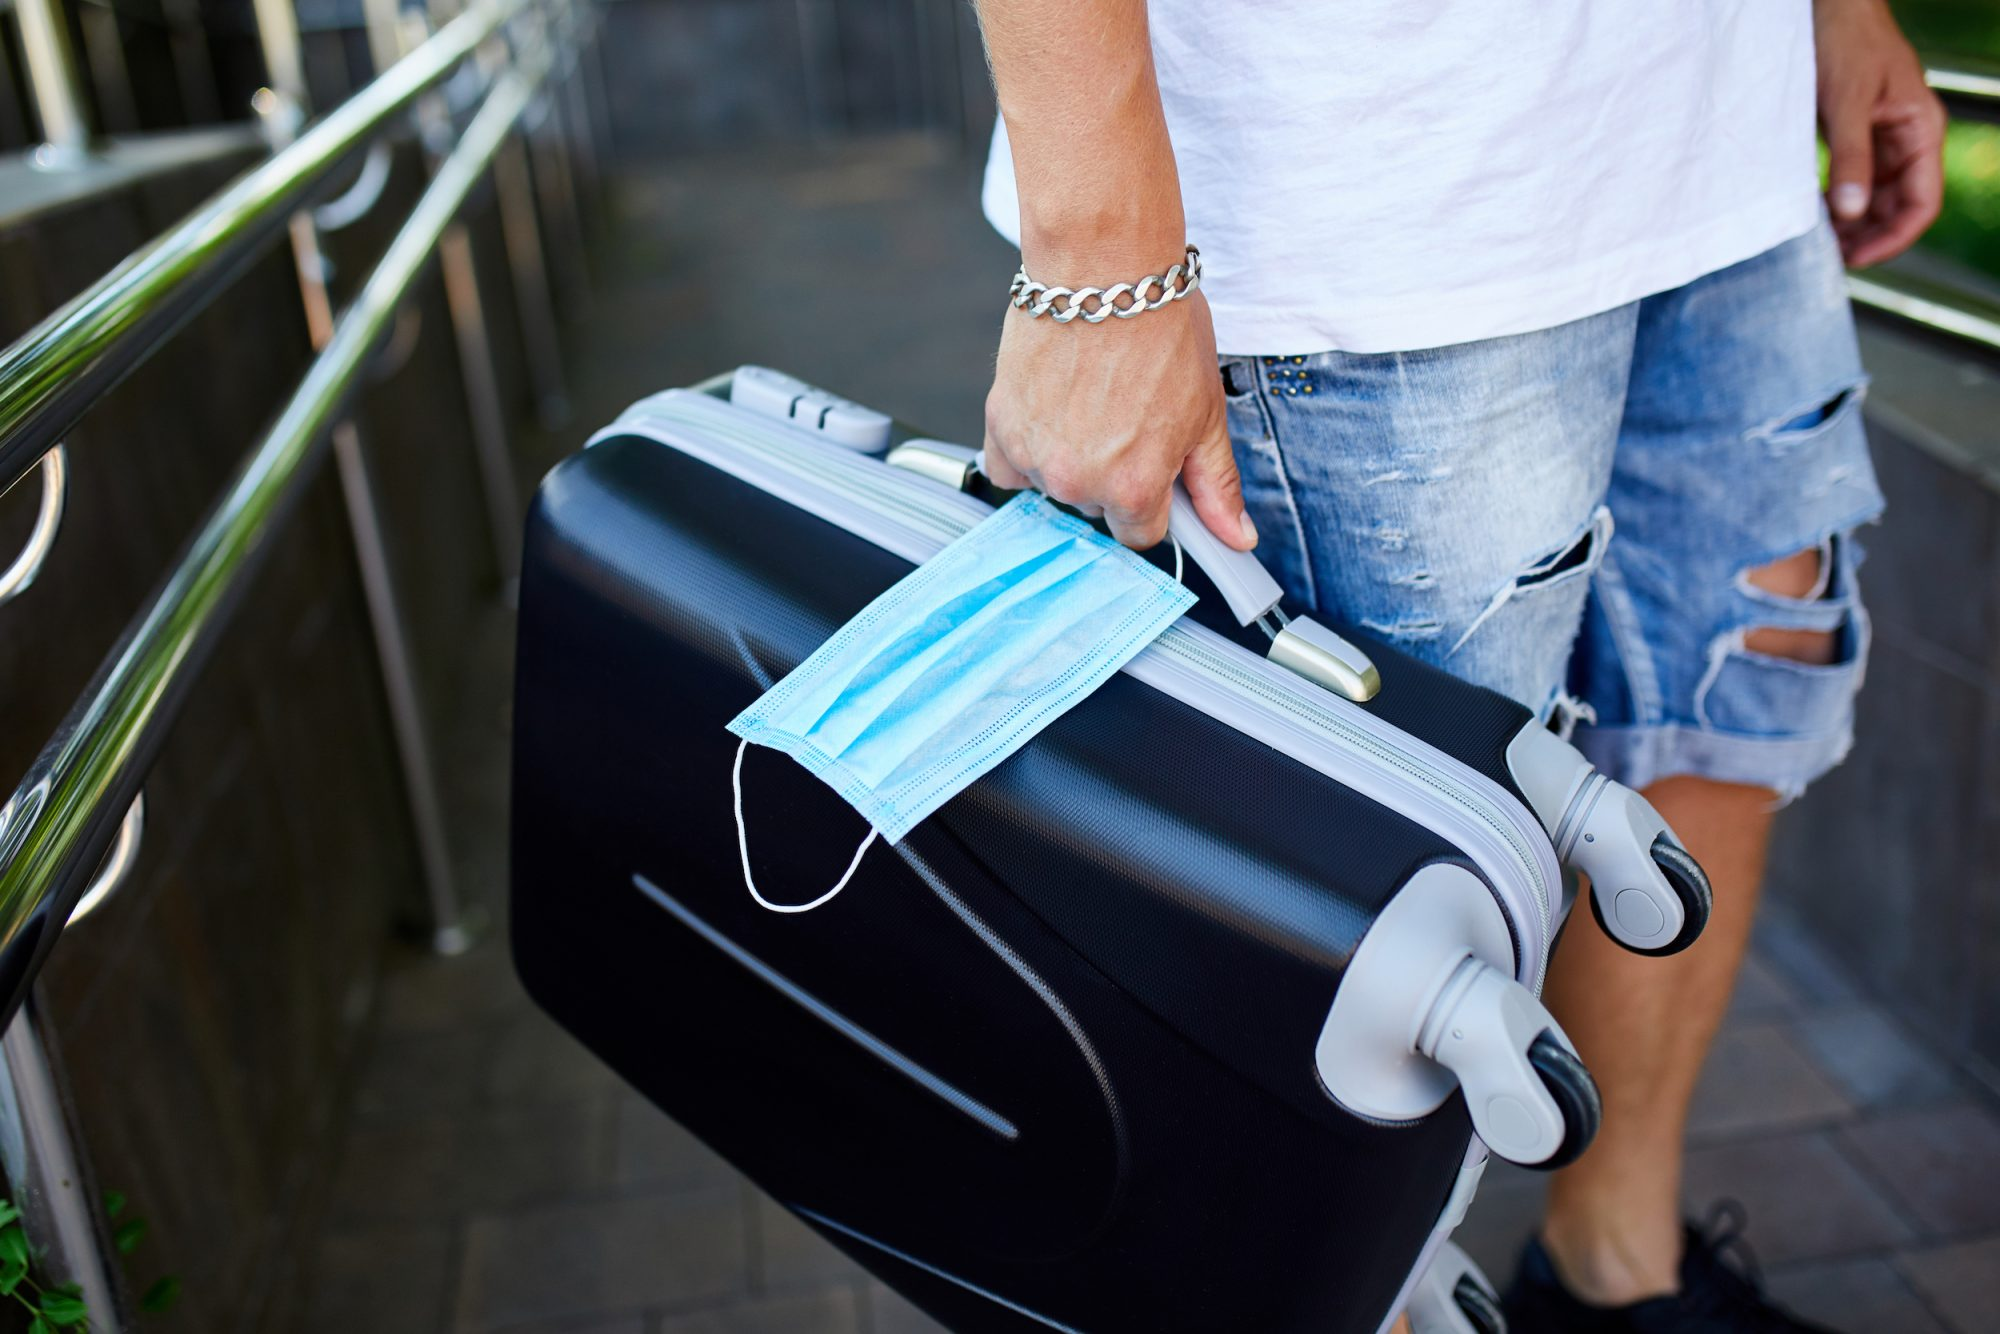 Will the Coronavirus vaccine become a mandatory condition for flying in the next year?